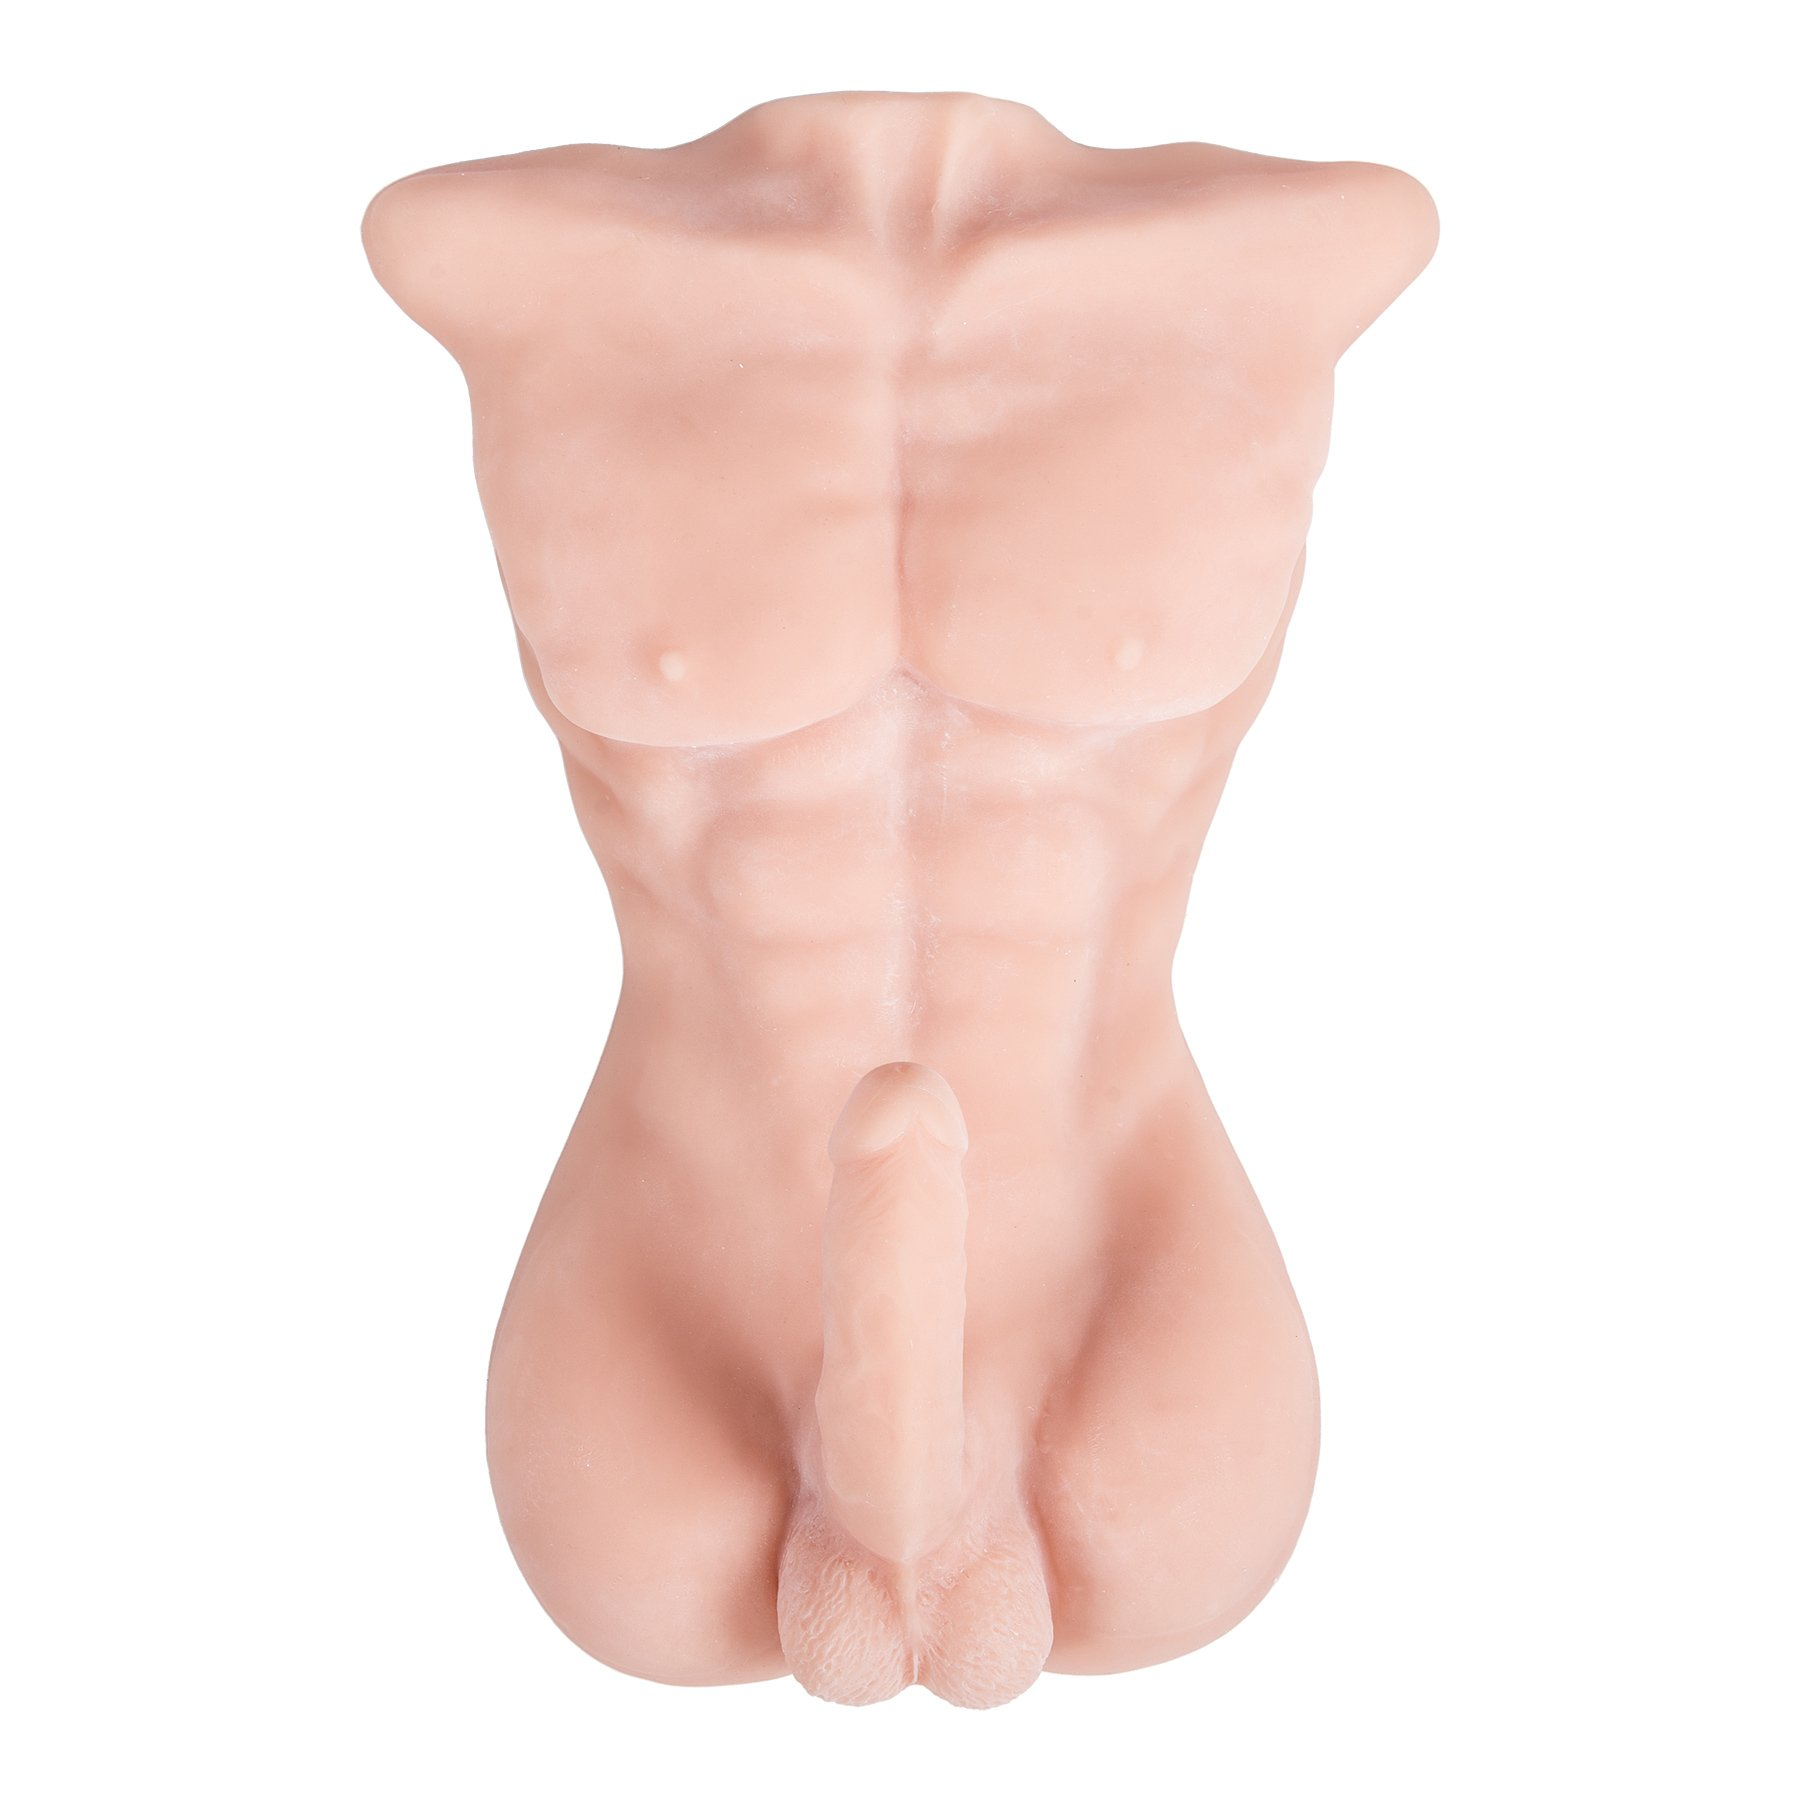 Y-Not Male Torso 3D Sex Doll Chiseled Male Body Realistic Love Doll with Large Dildo Penis Adult Toy (White) by Y-Not